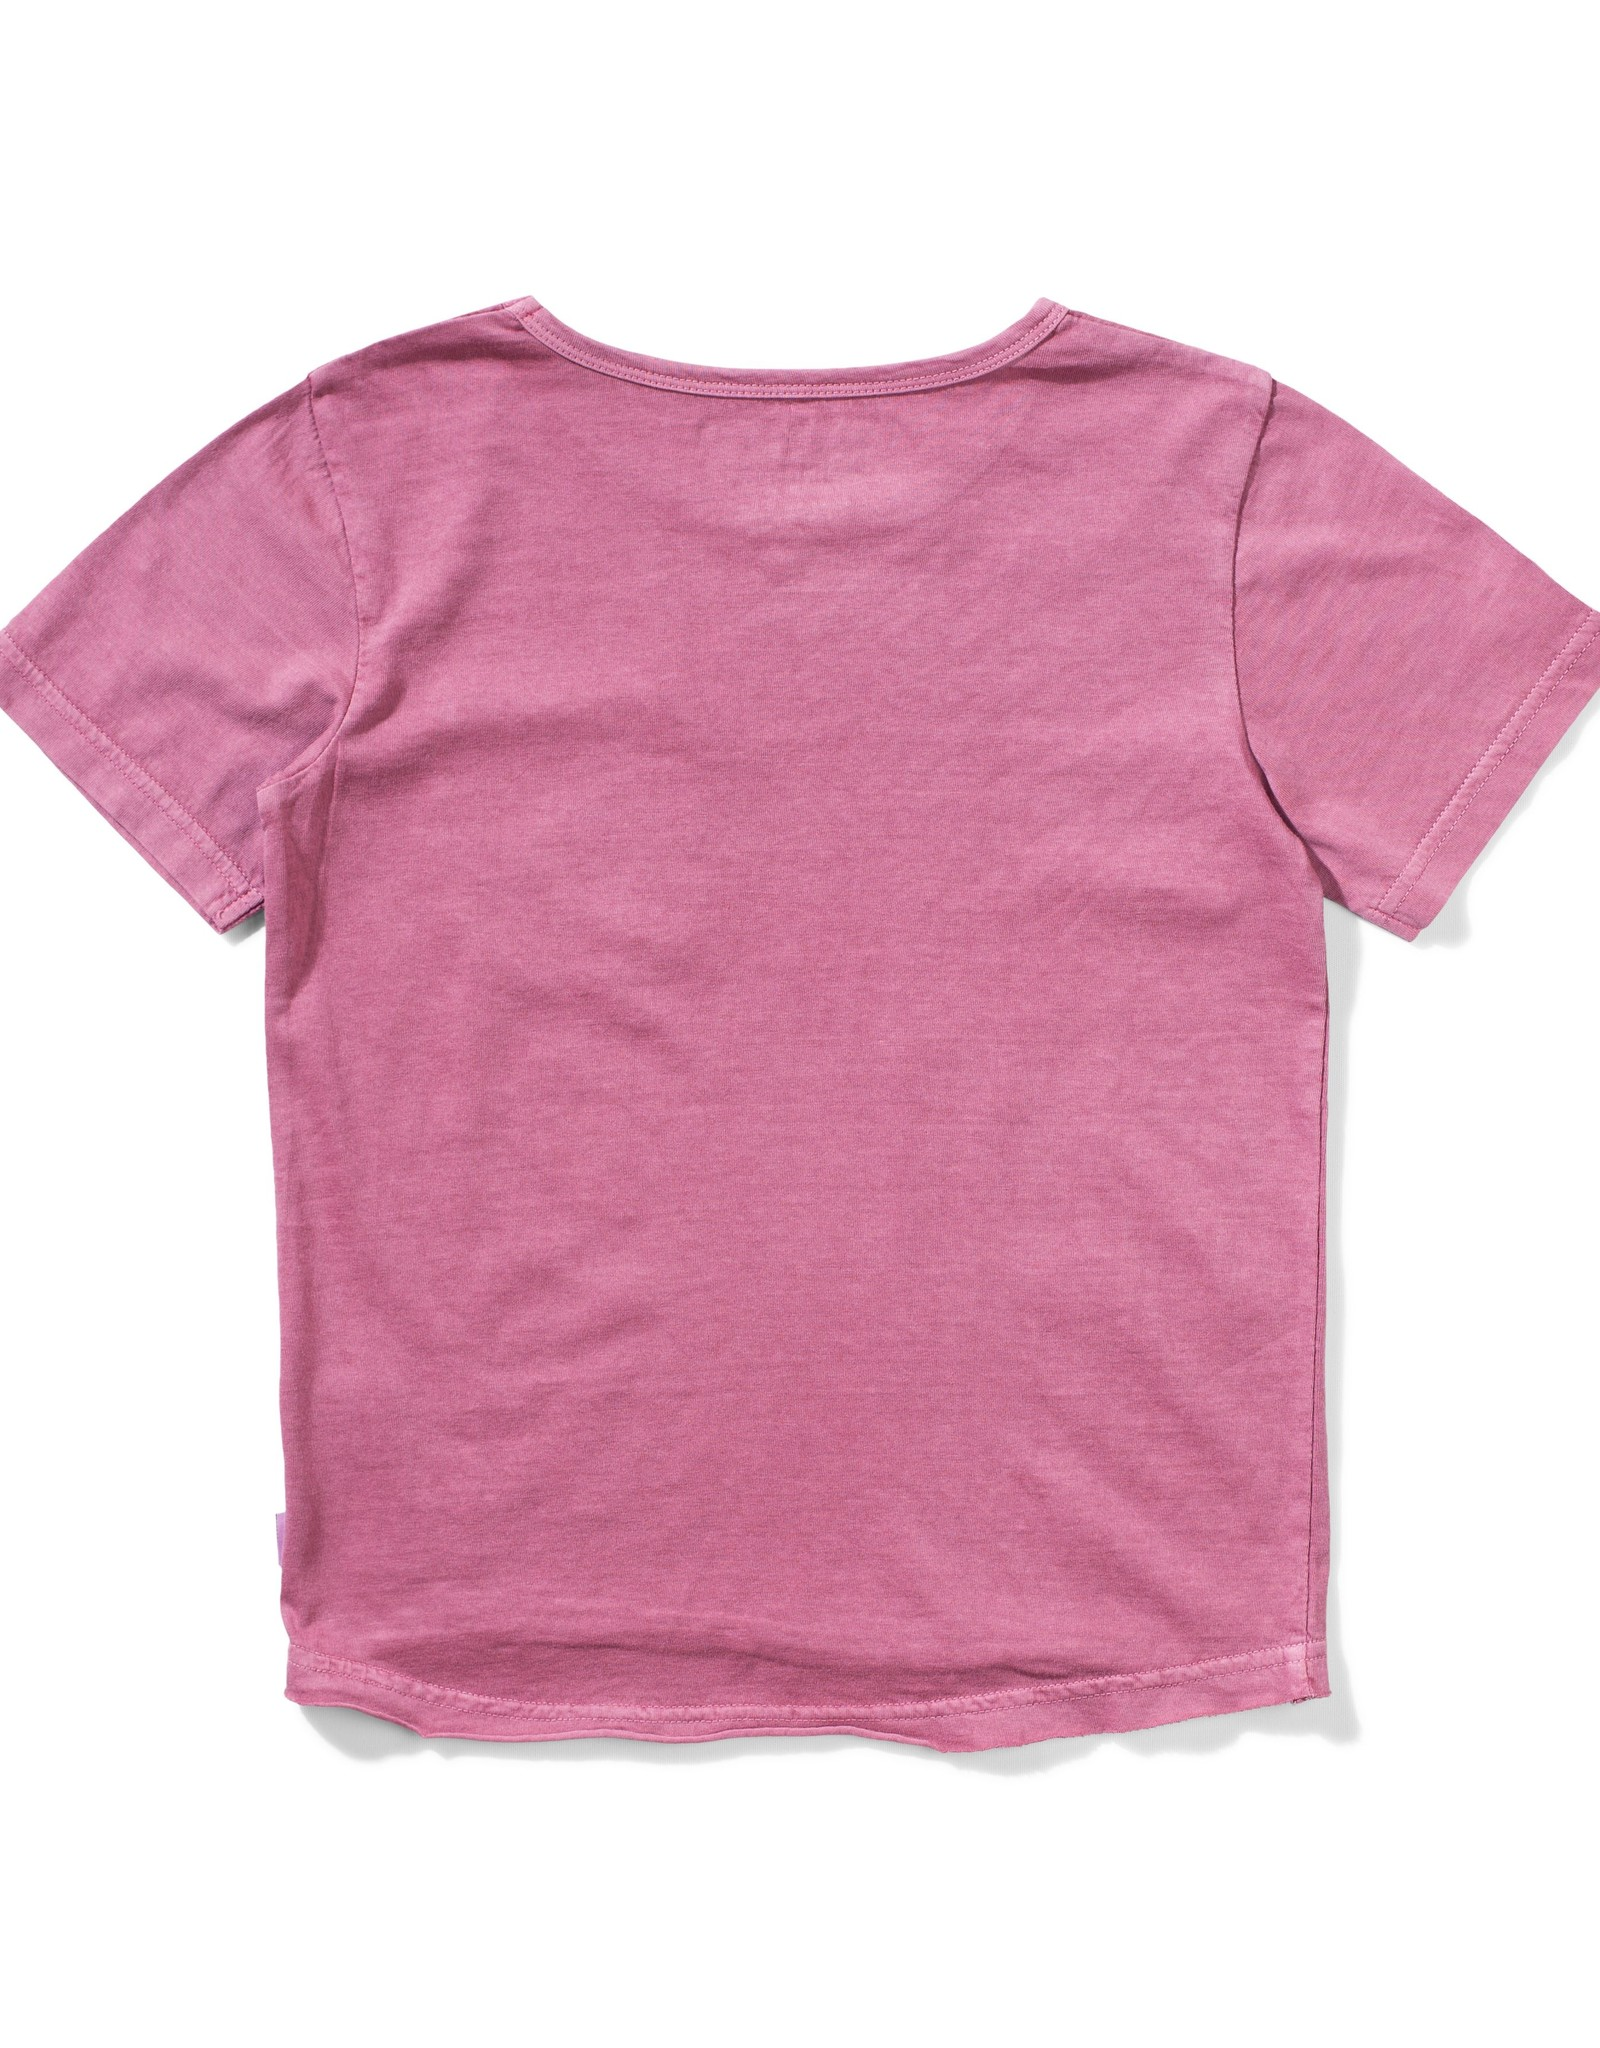 Munster Kids dropit ss tee- dusty pink